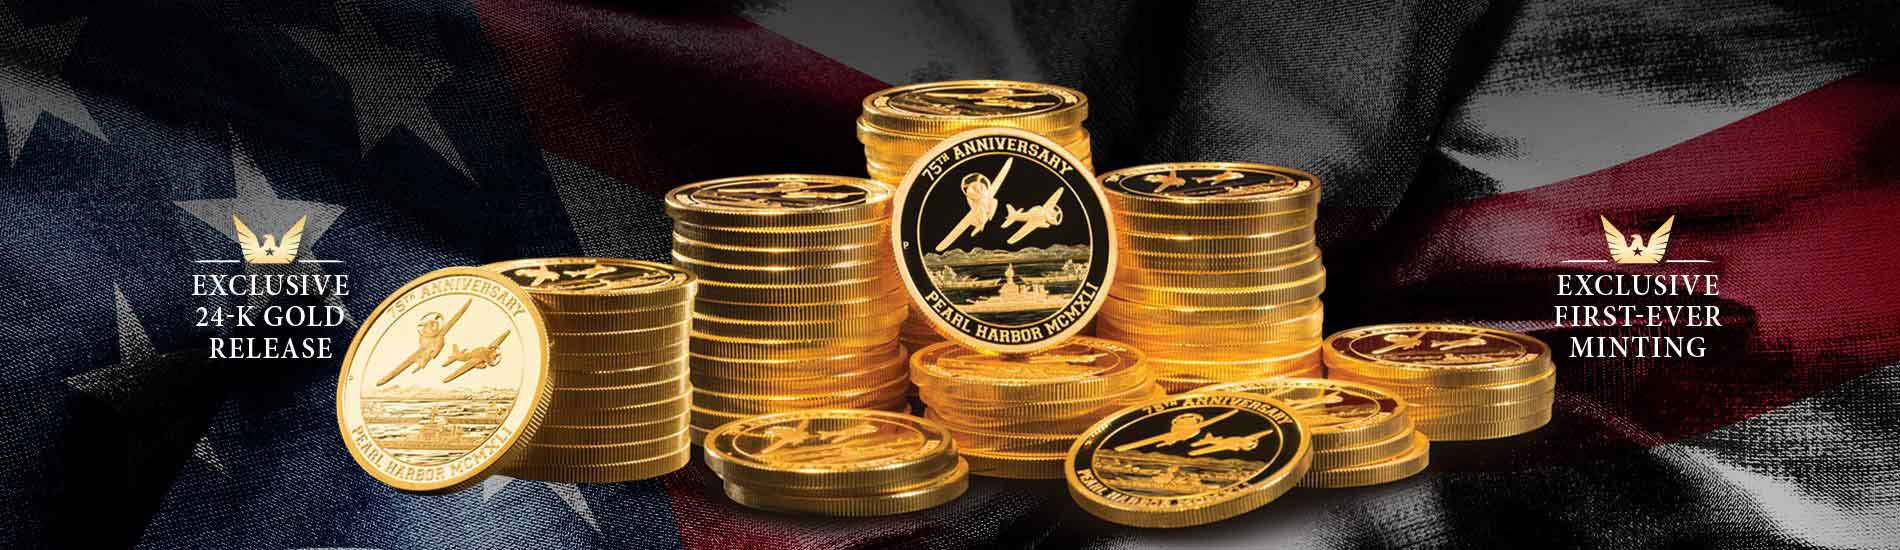 Stack of pearl harbor gold coins against an american flag background